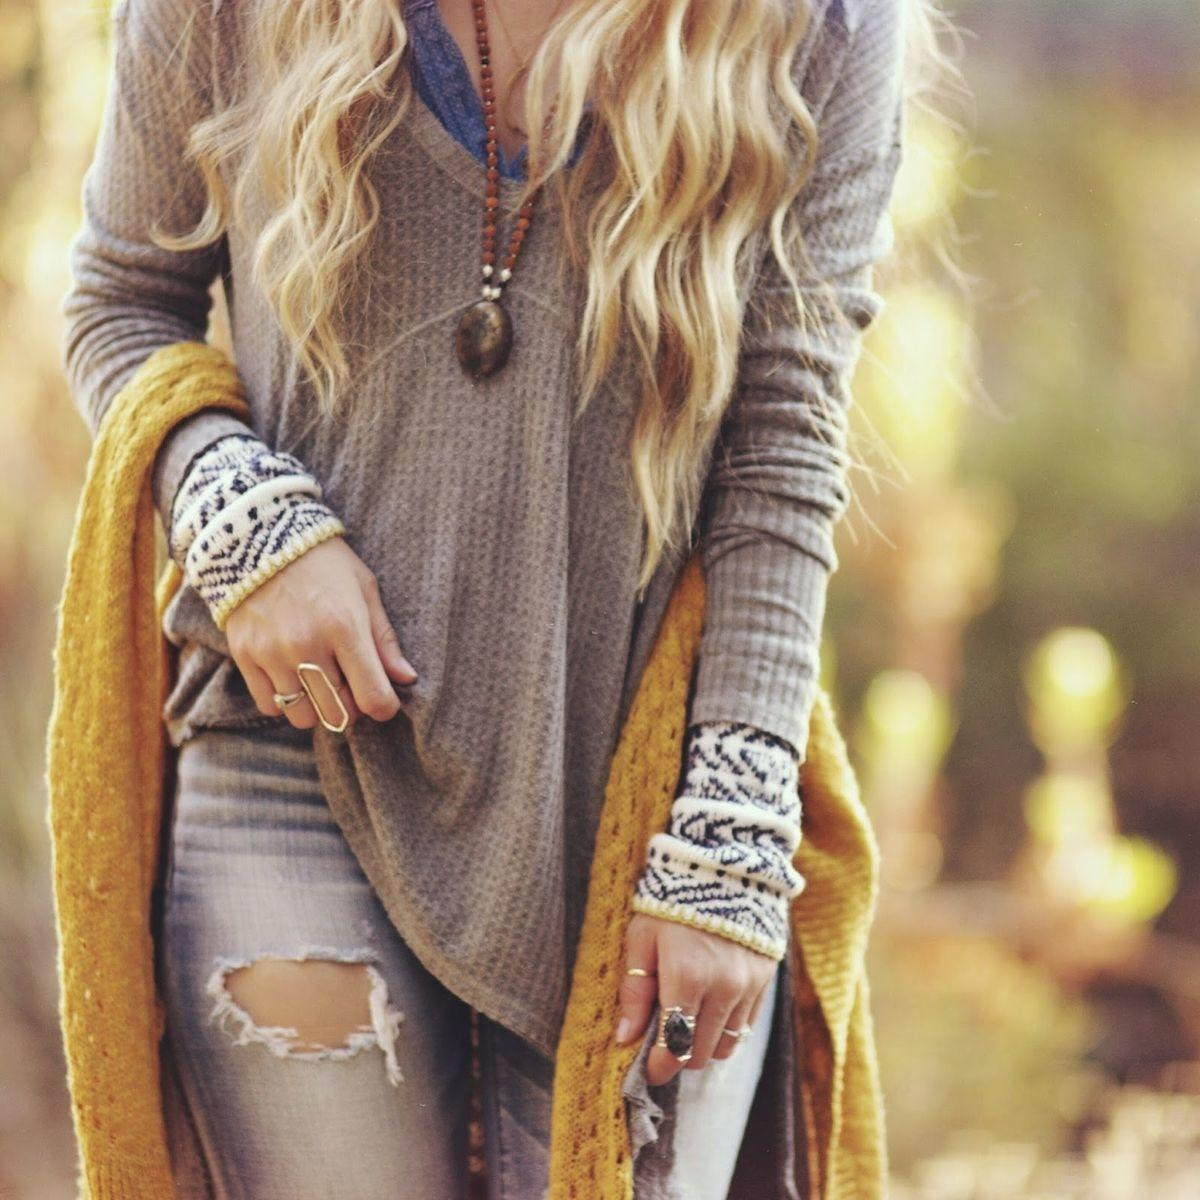 #LetsTwashIt I love cozy bohemian outfits when it is getting cold